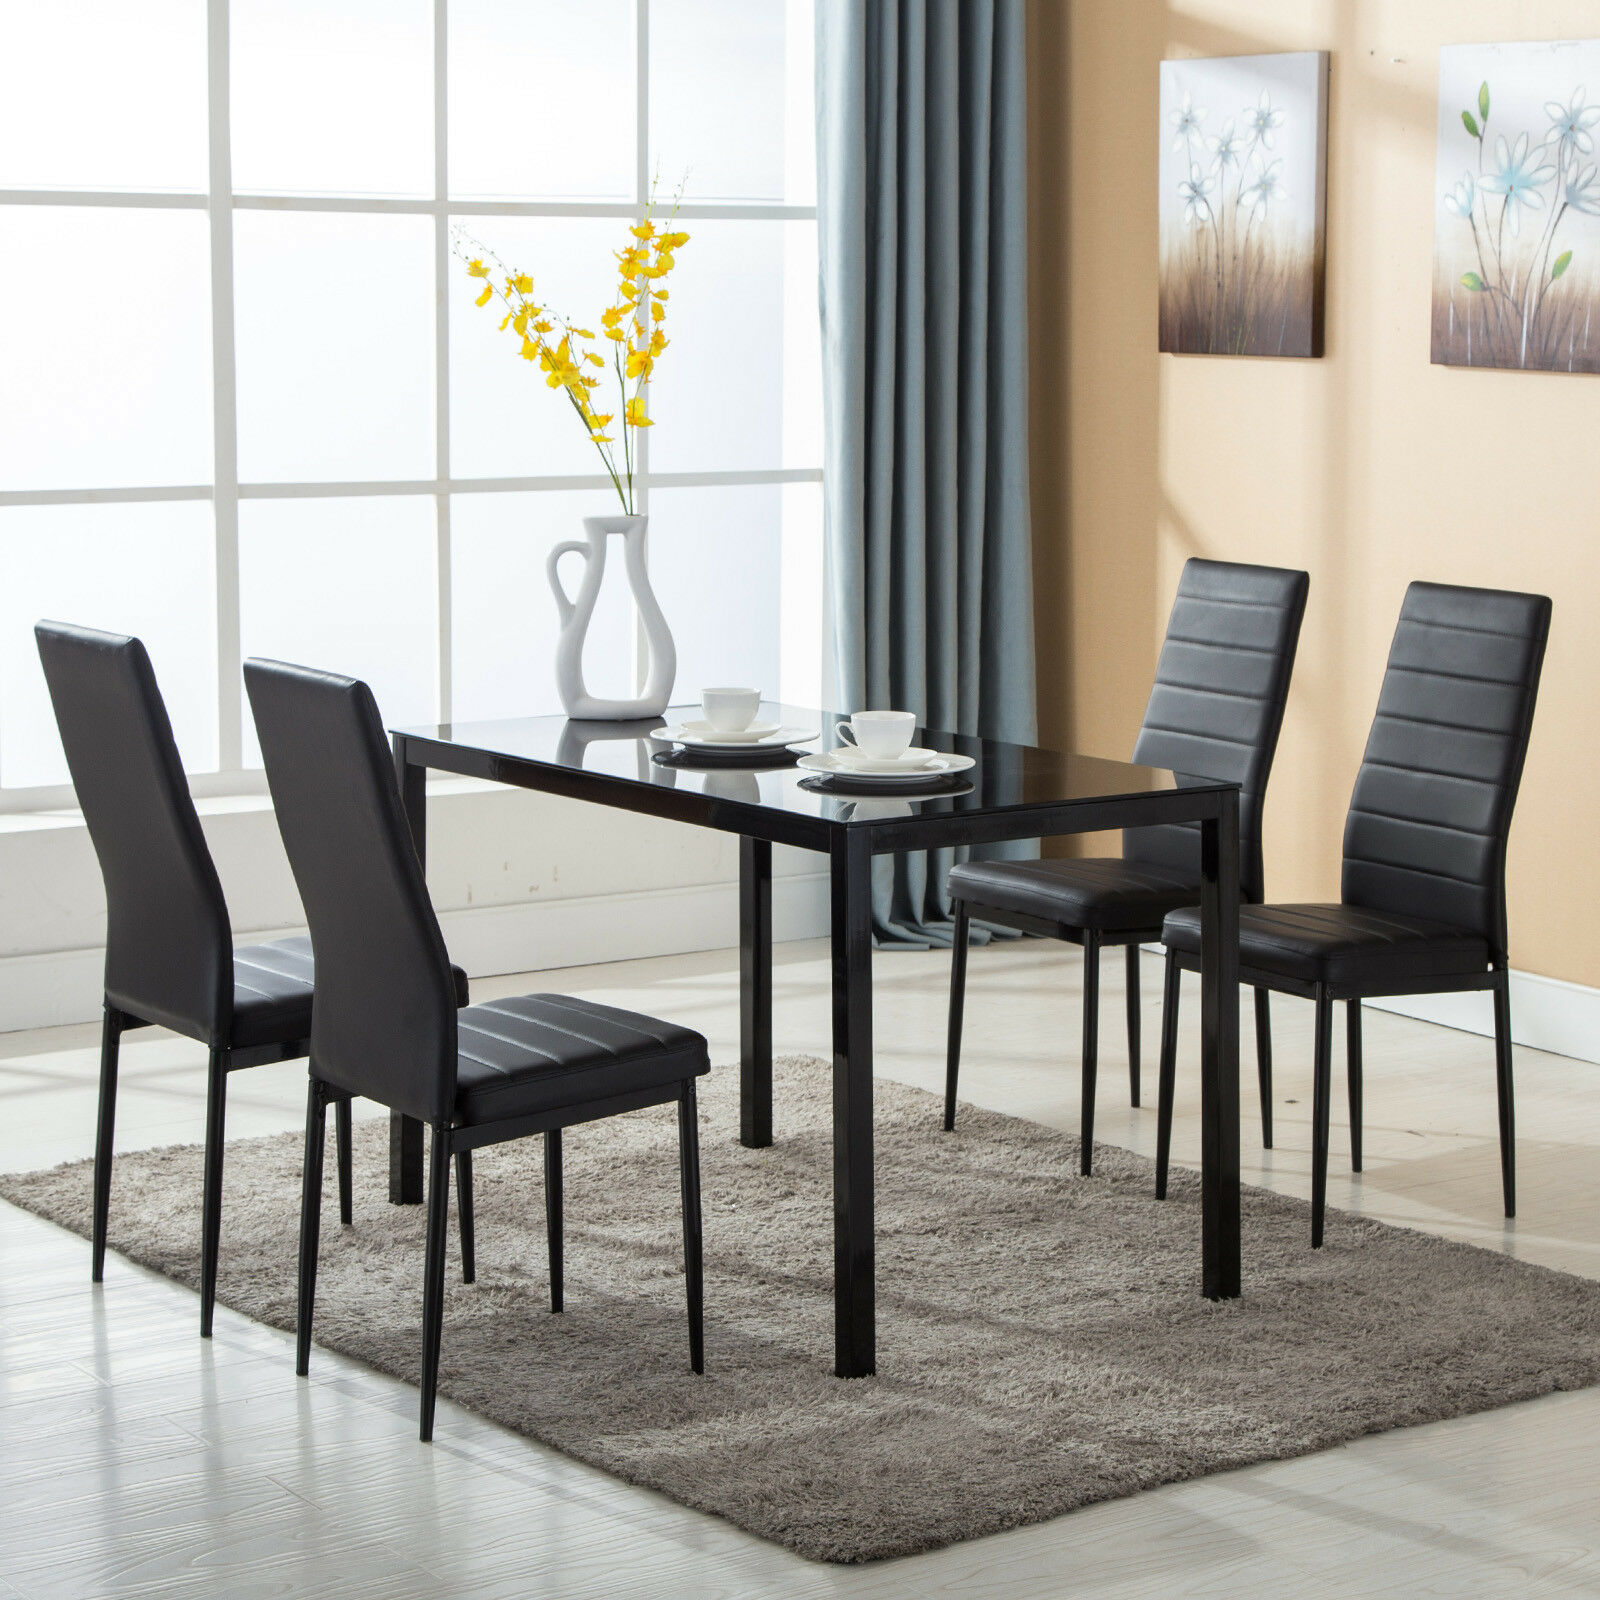 Details about 5 Piece Dining Table Set 4 Chairs Glass Metal Kitchen Room  Breakfast Furniture